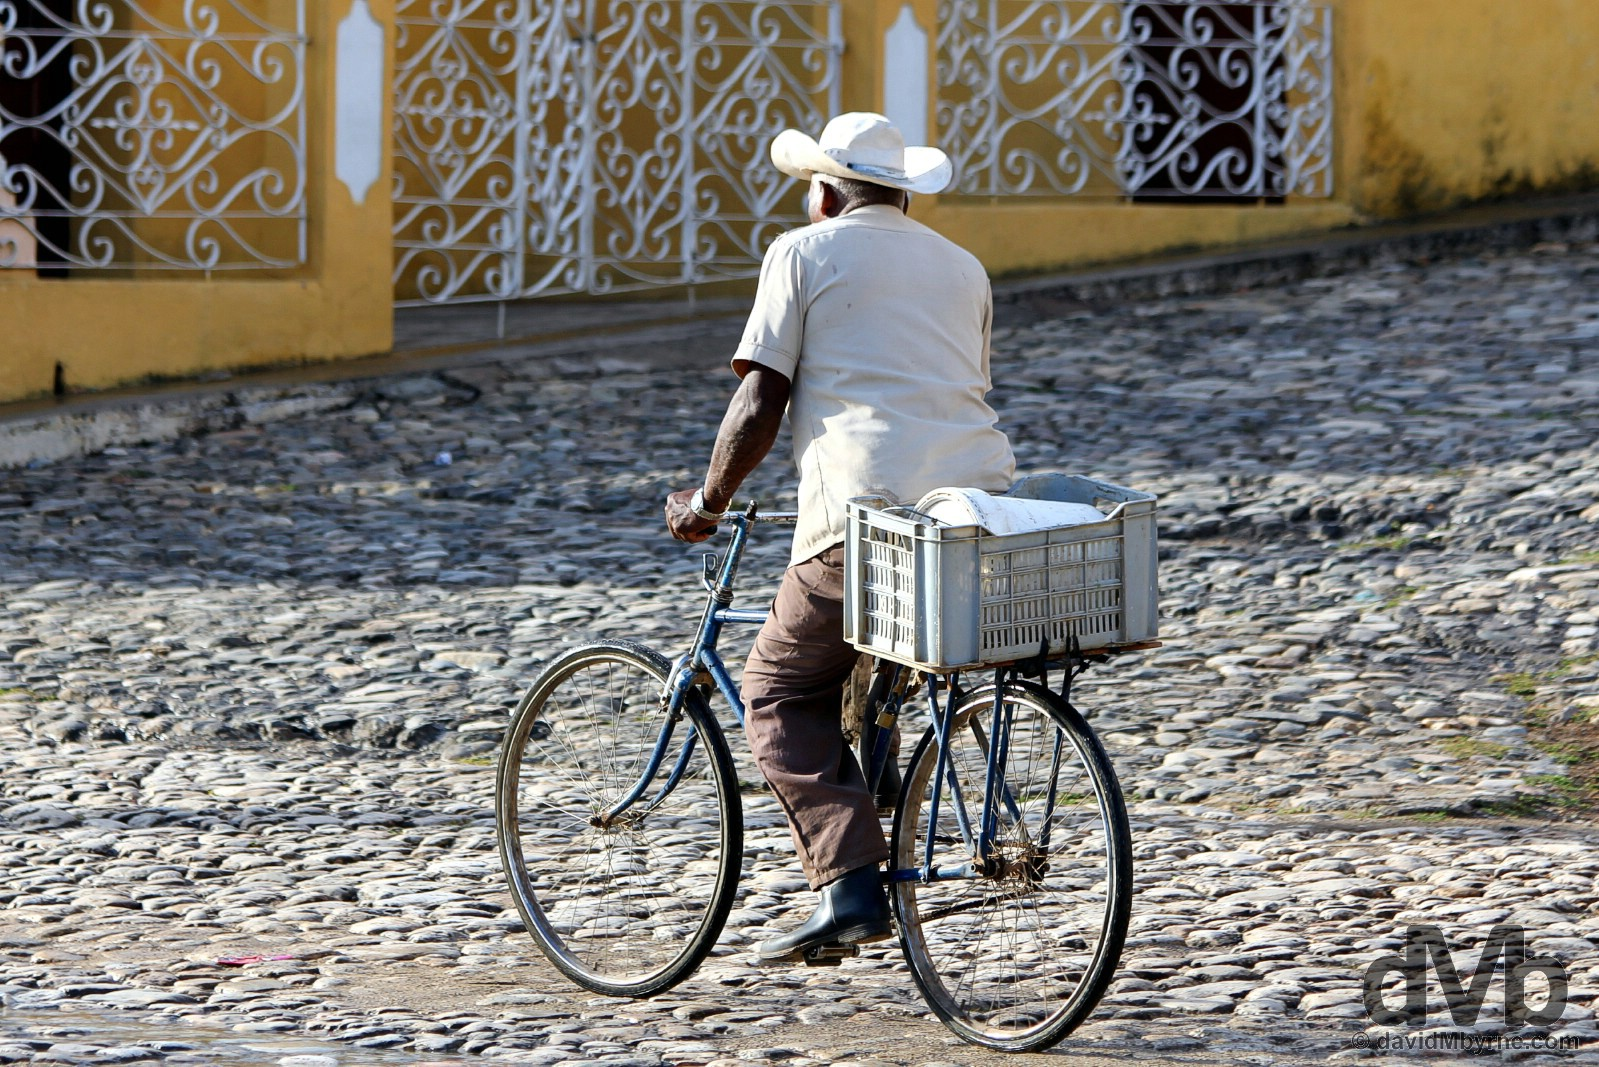 On the cobbled streets of Trinidad, Cuba. May 5, 2015.